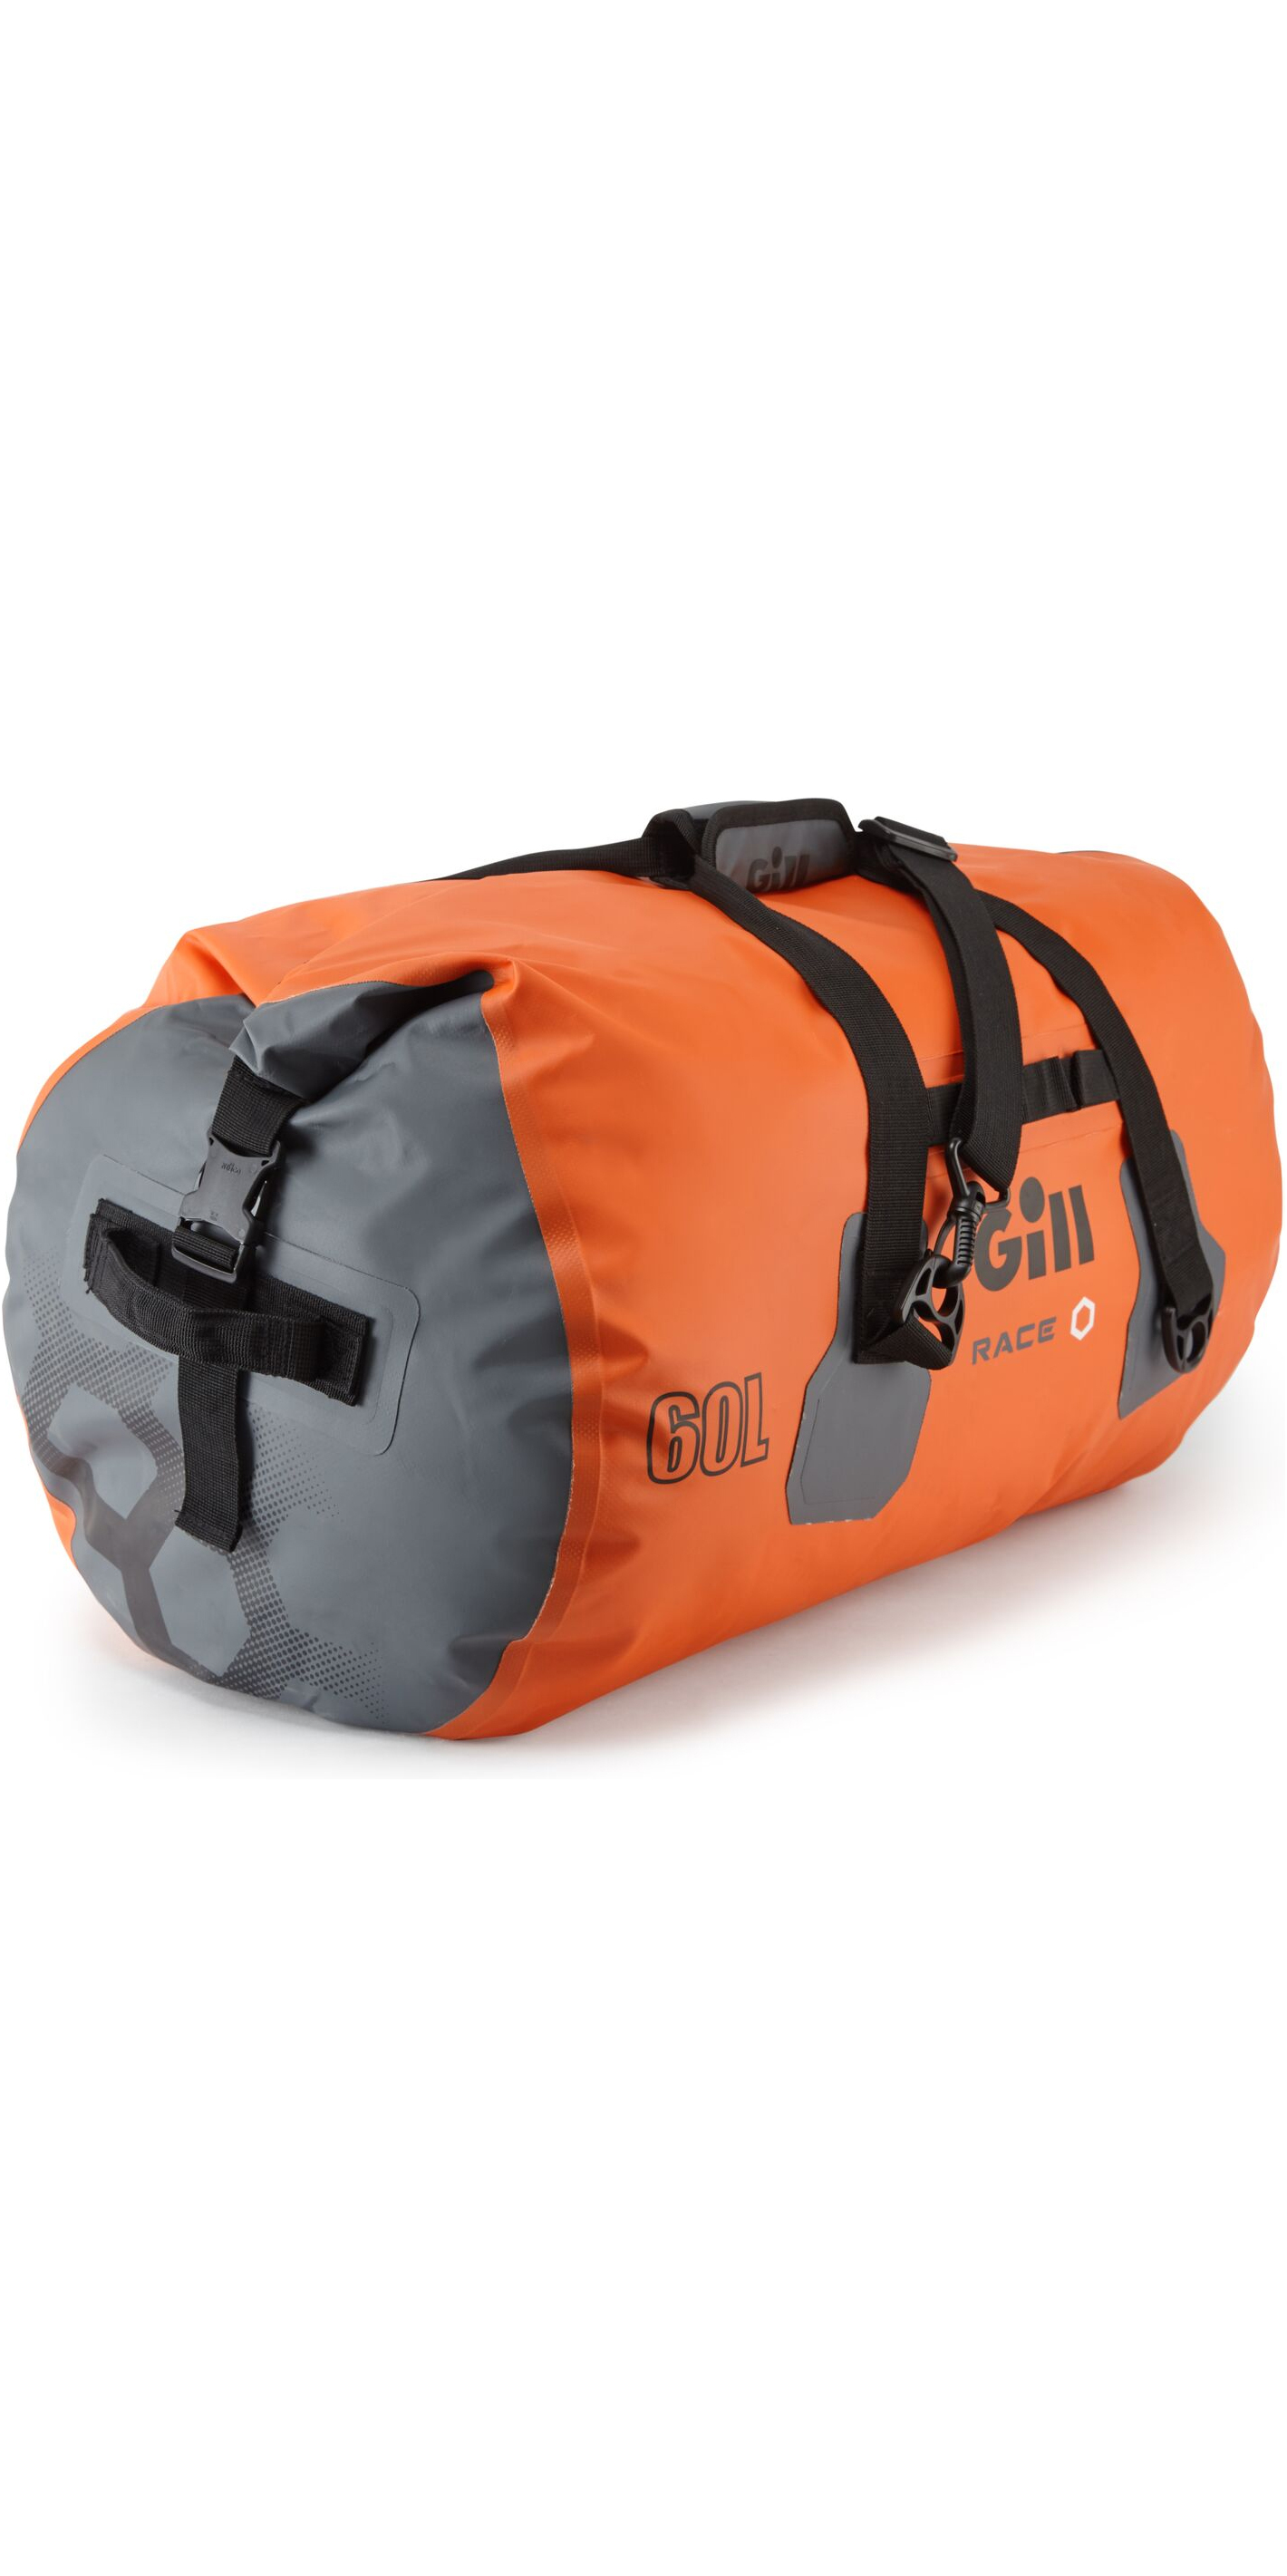 2019 Gill Race Team 60L Waterproof Bag Tango Rs14 - Rs14 - Holdall ... 8250f42cfe